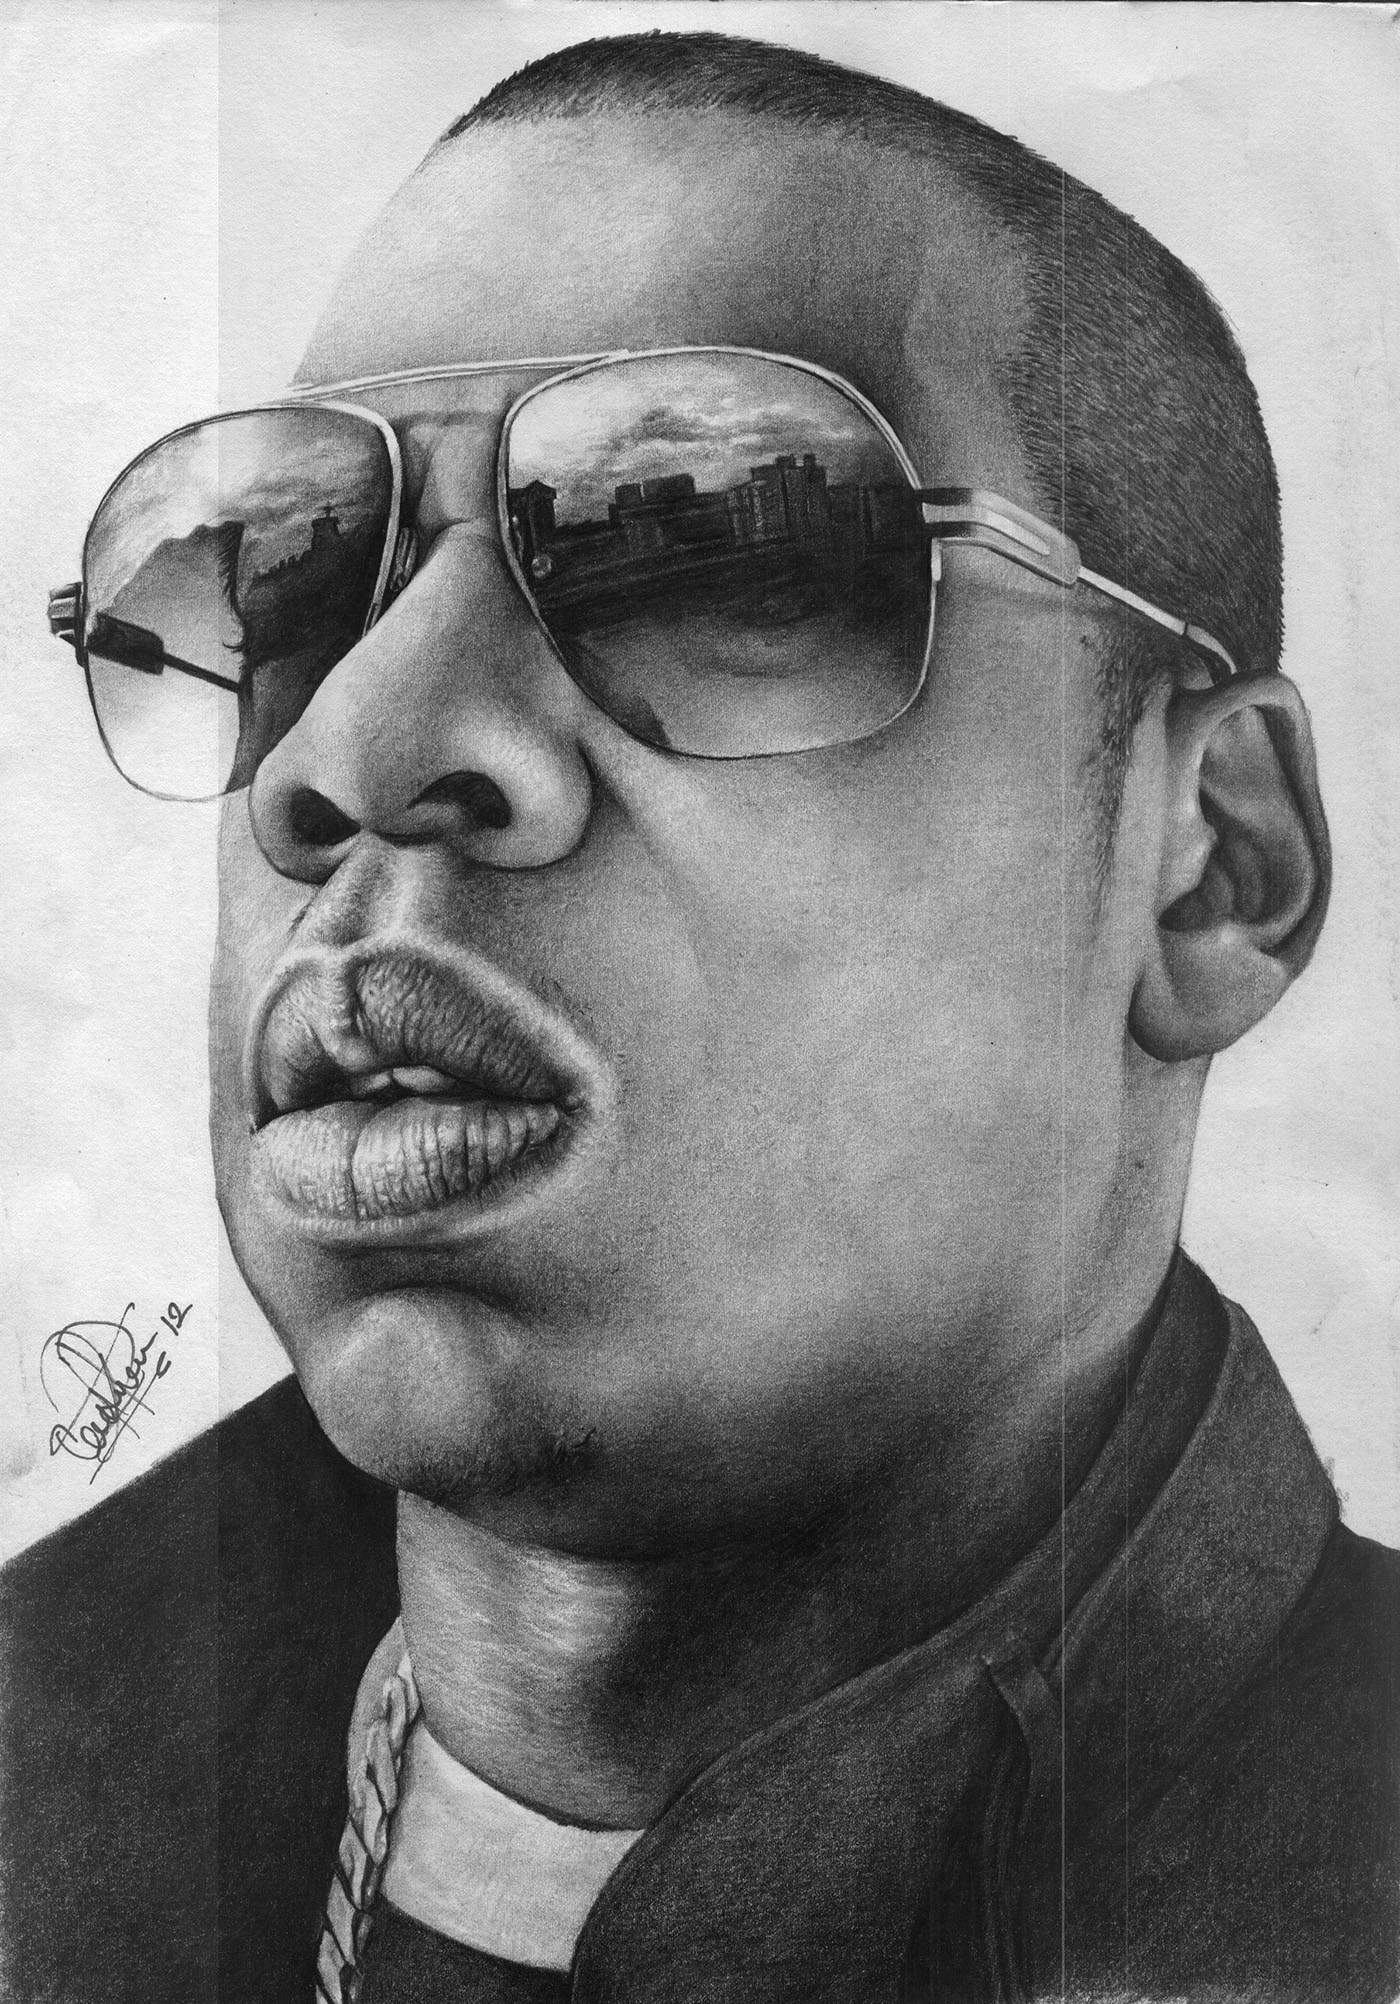 My pencil drawing of shawn corey carter aka jay z one of the best rappers ever i used 6b and a 4b graphite pencil and an acid free paper